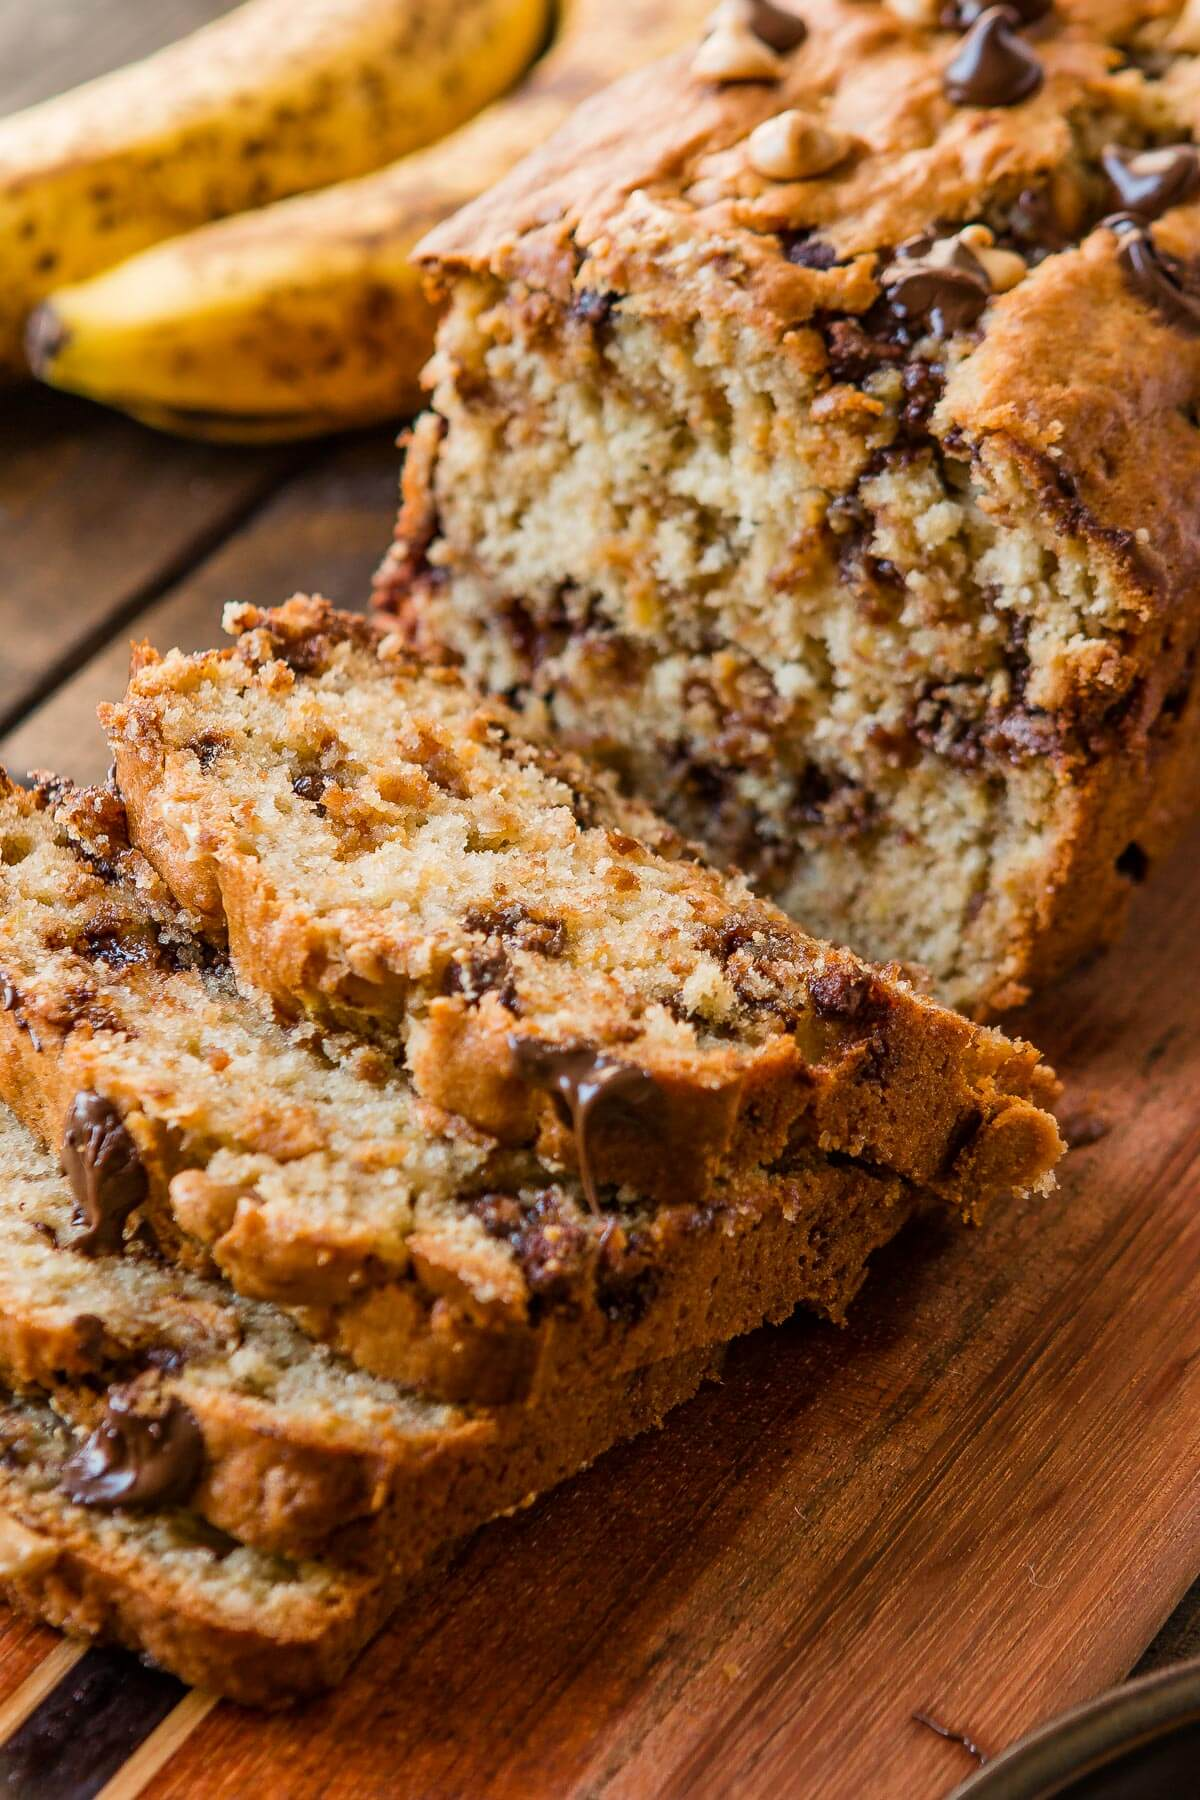 Peanut butter banana bread ohsweetbasil.com